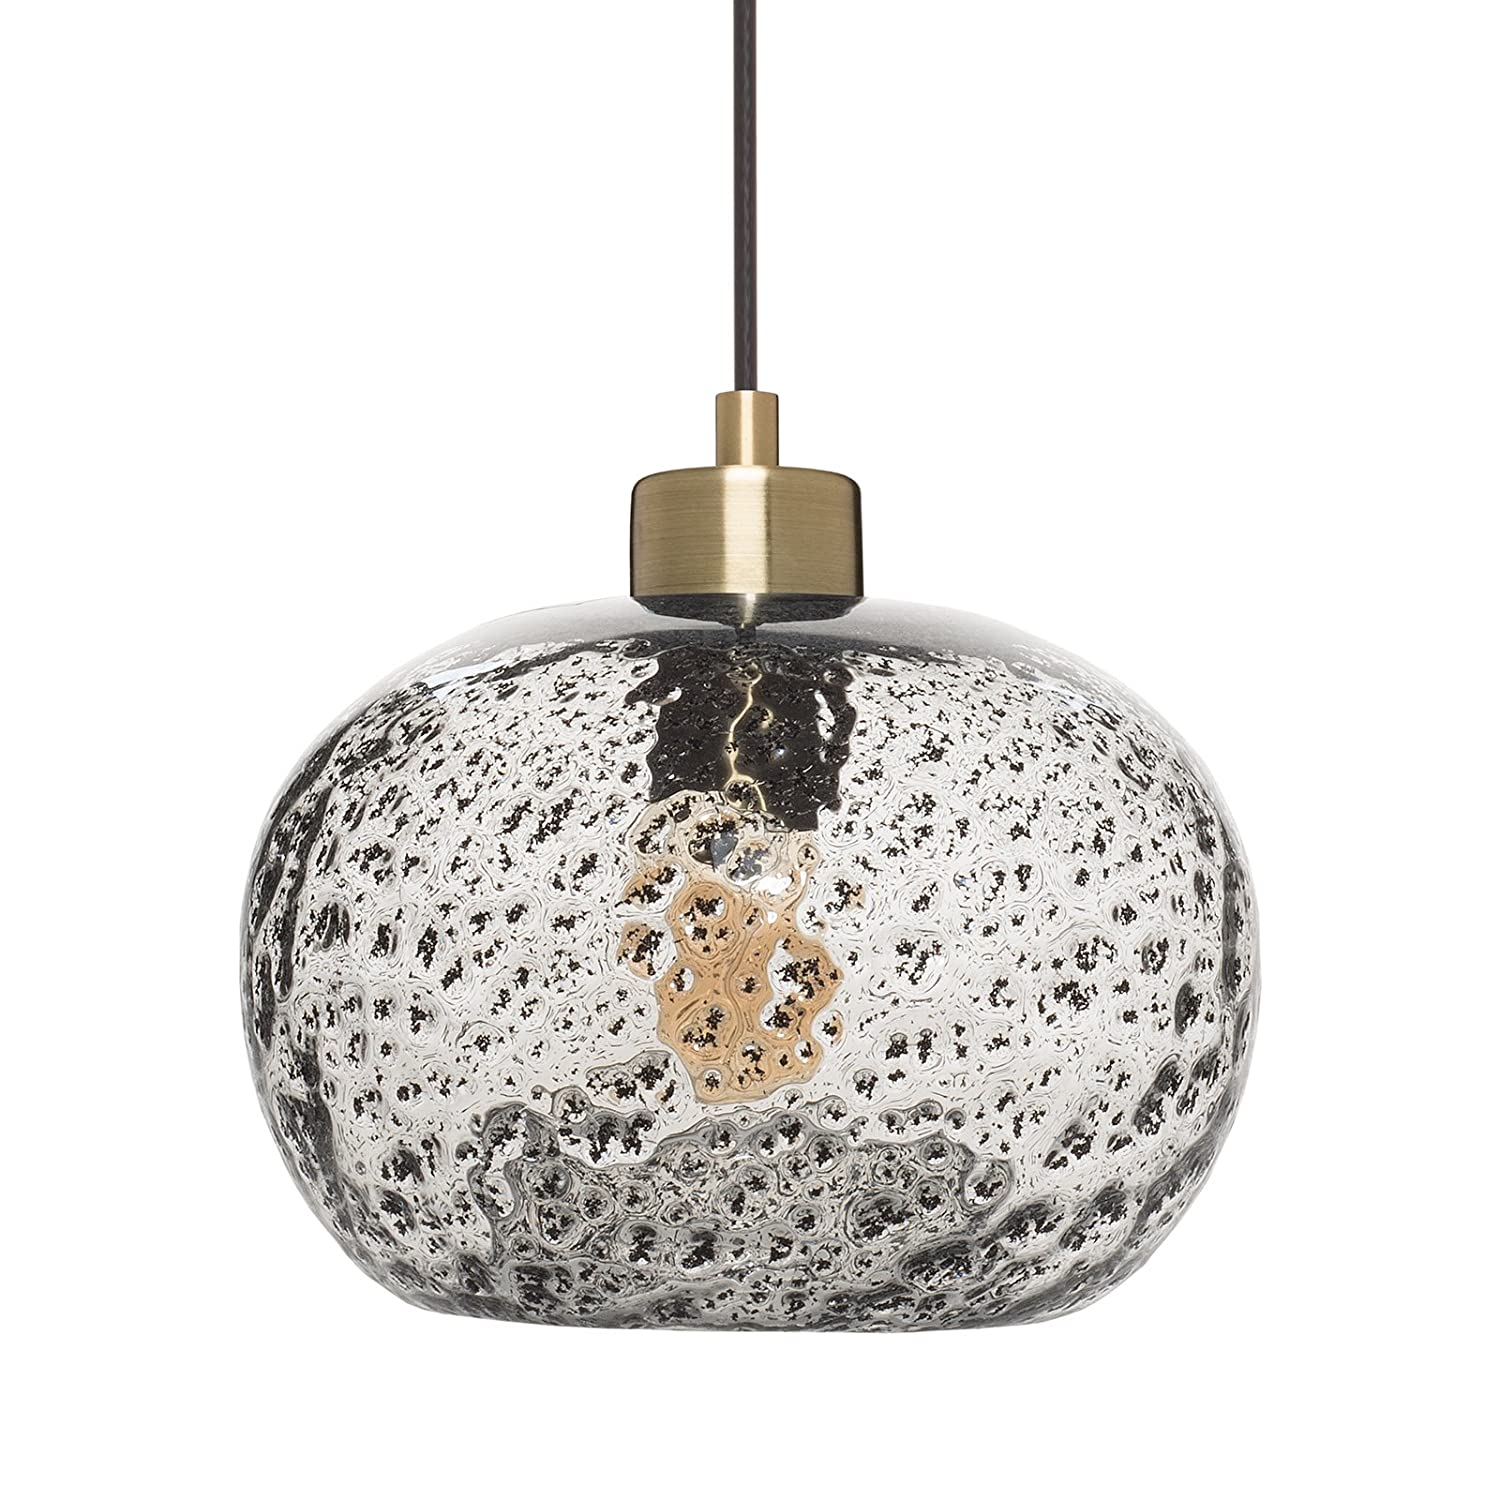 Casamotion Mini Pendant Light Handblown Rustic Seeded Glass Drop ceiling  lights, Hanging Light with black